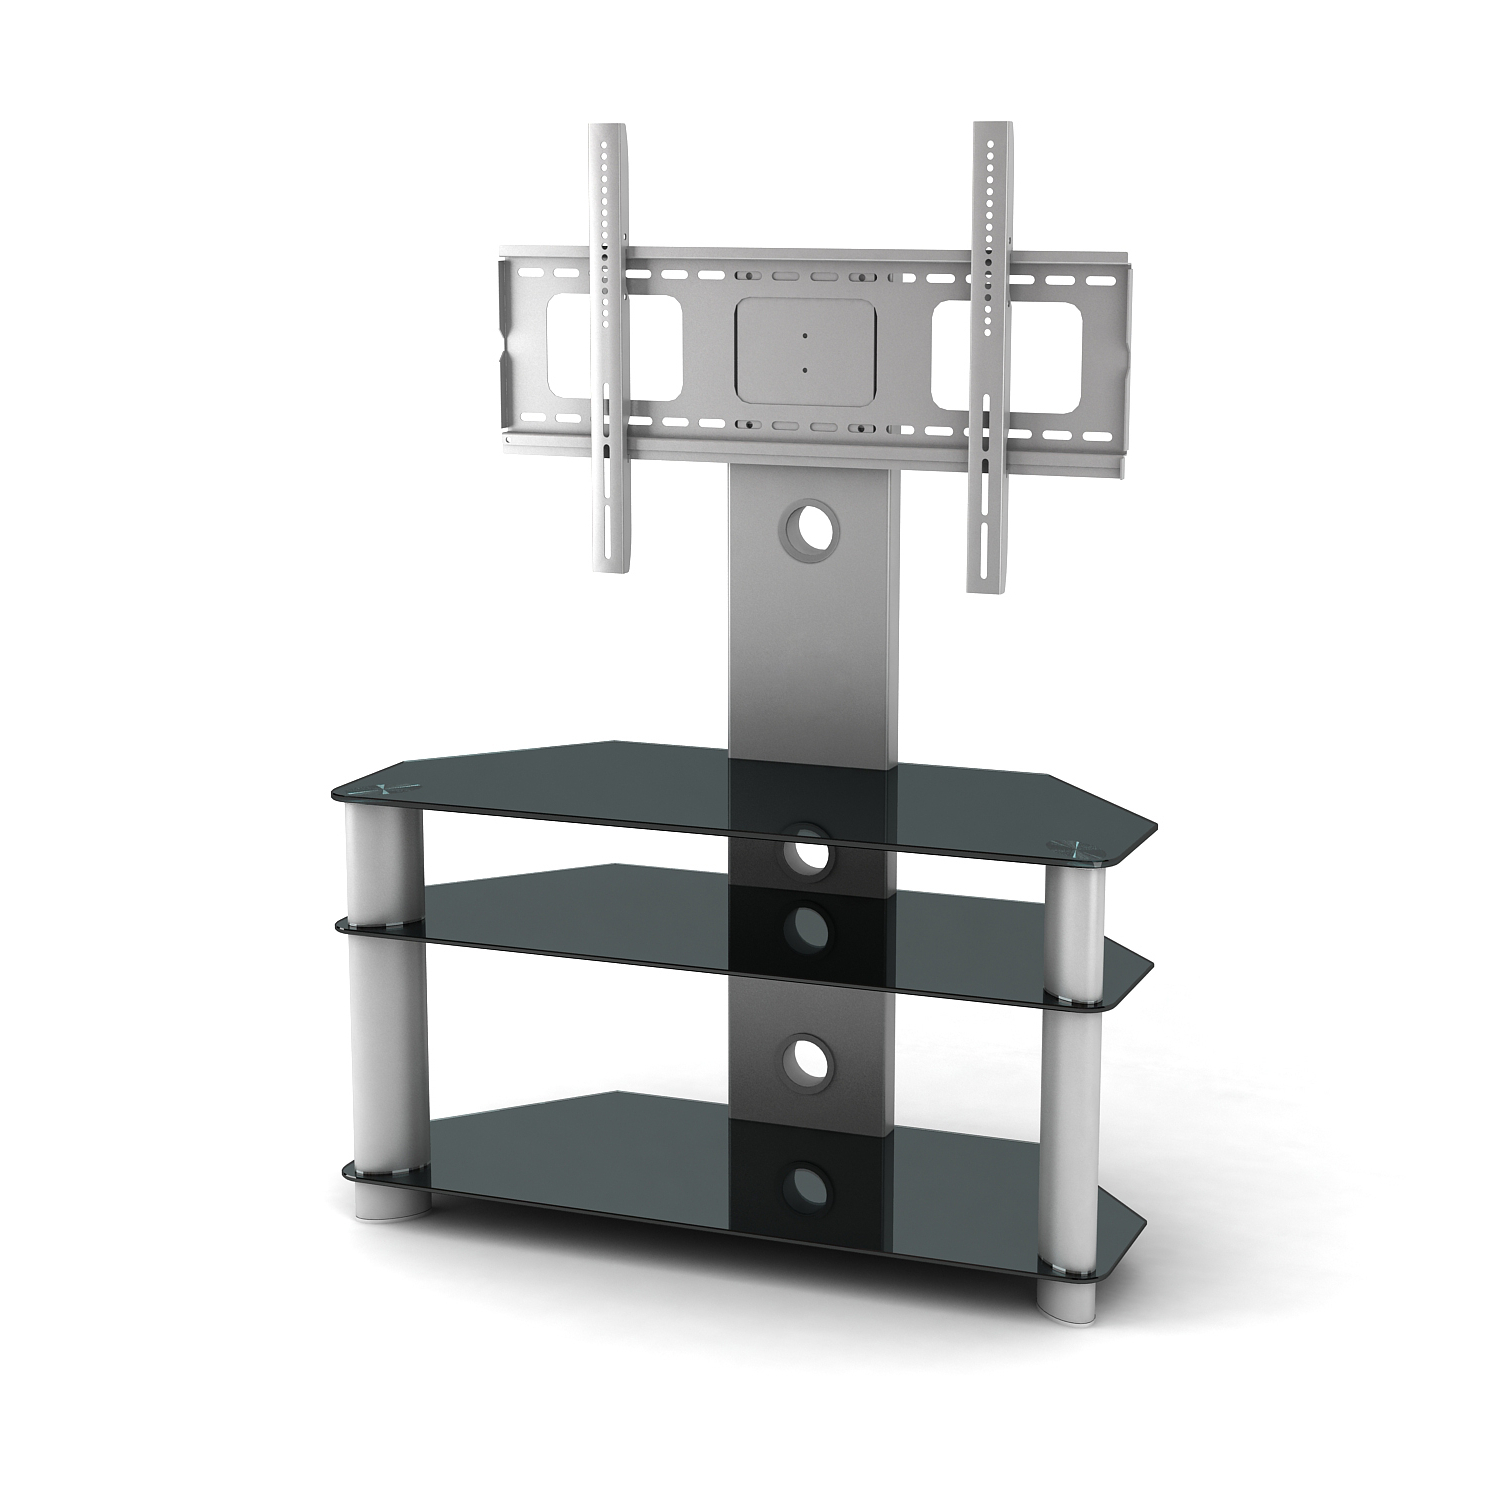 Cabtilever Tv Stands (View 2 of 20)